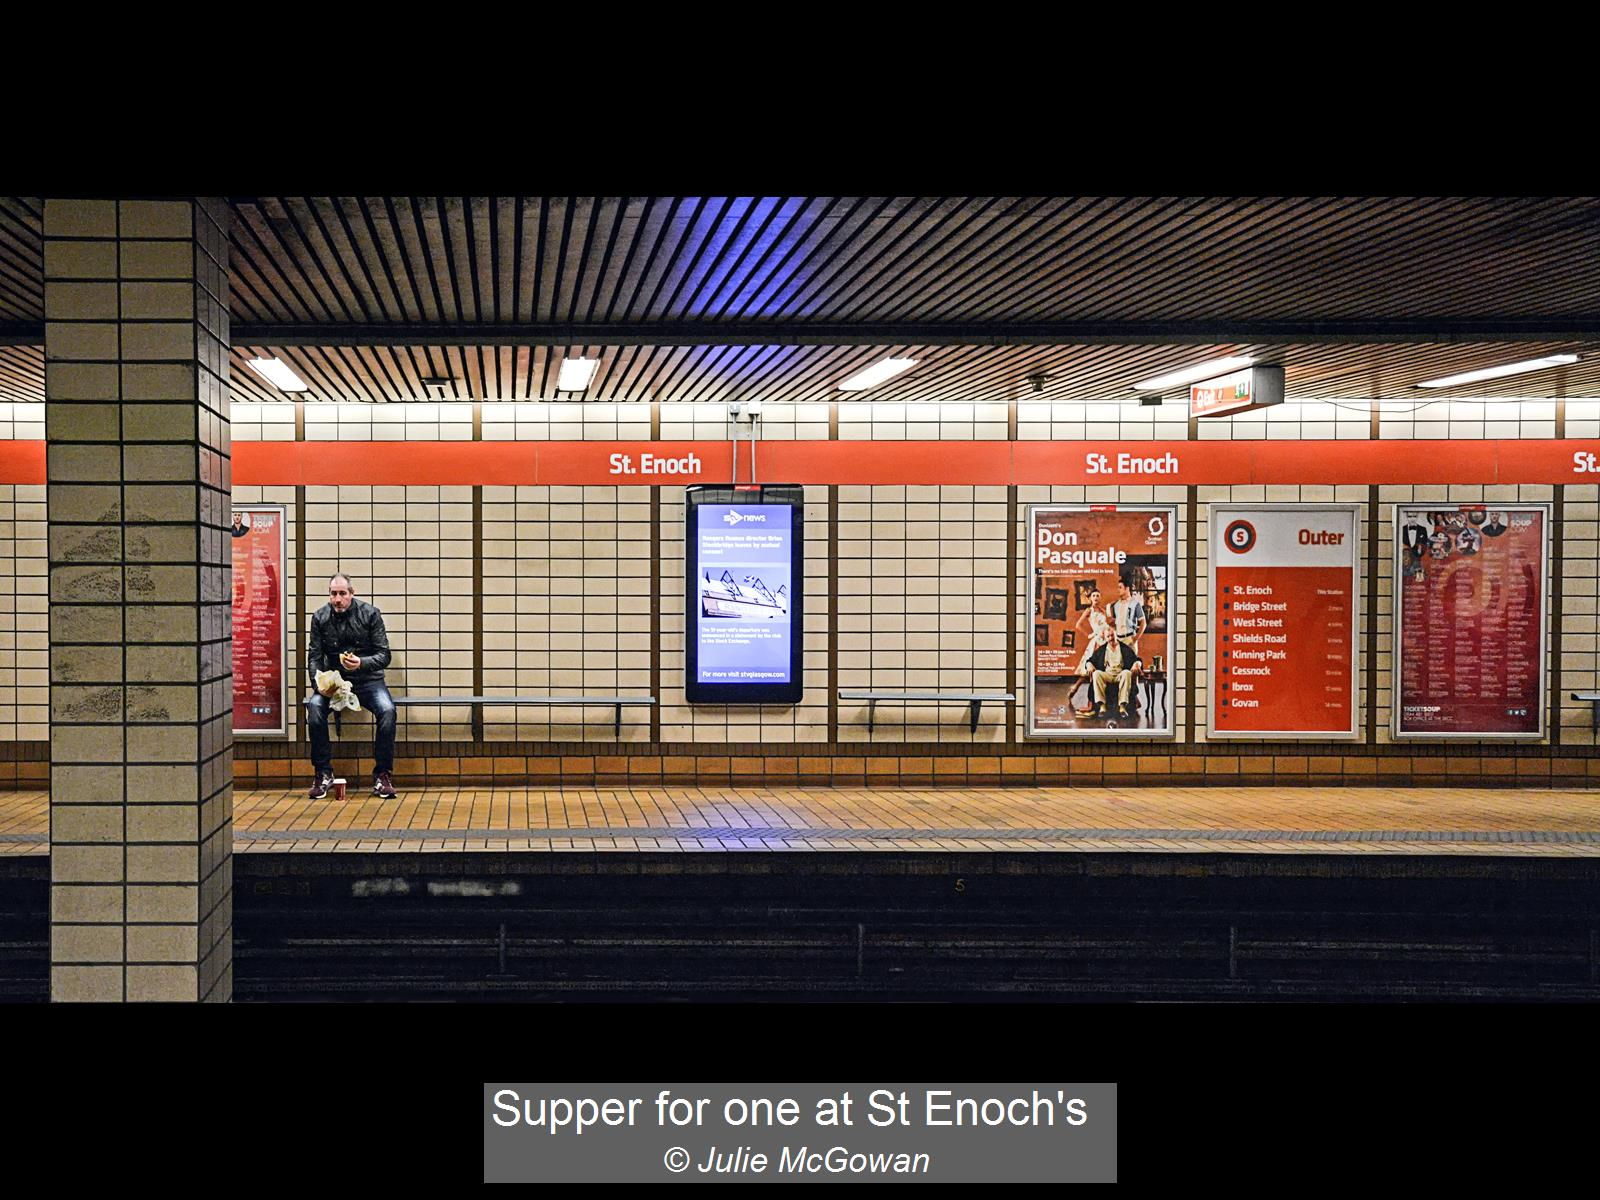 Julie McGowan_Supper for one at St Enoch